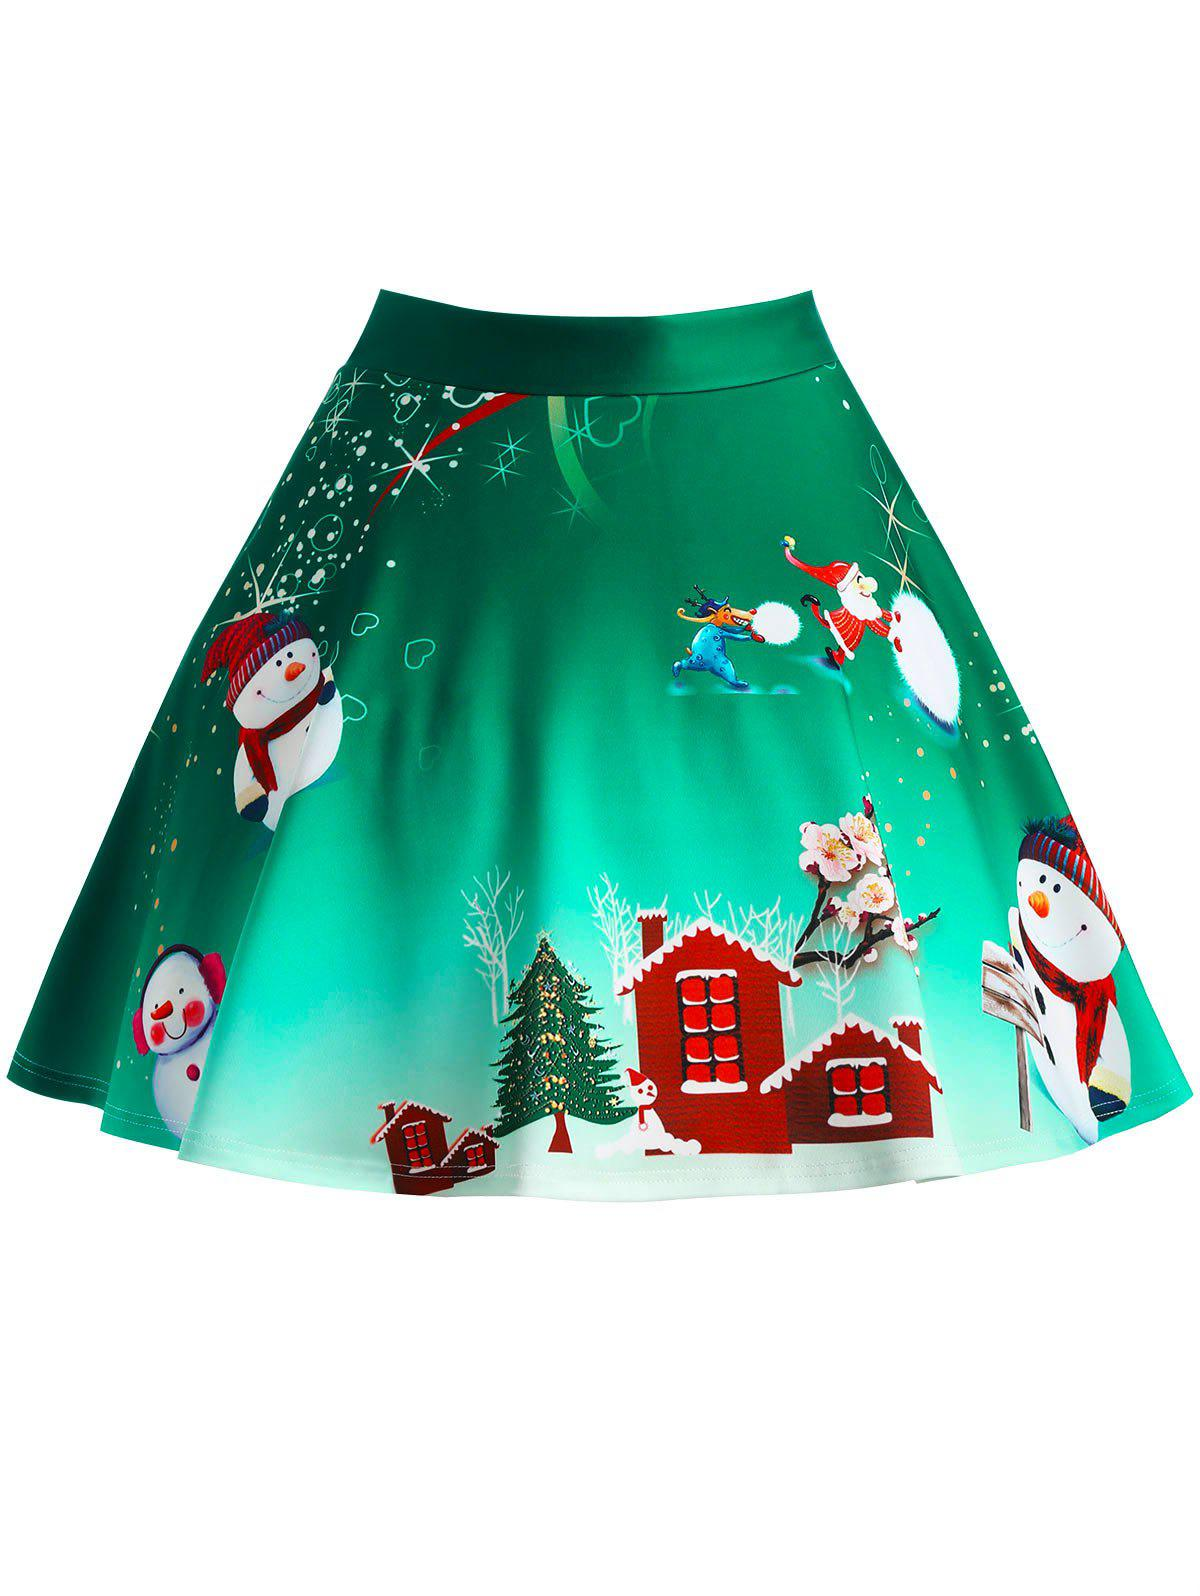 Unique Christmas Tree Snowman Wintersweet Print Ombre Plus Size Skirt